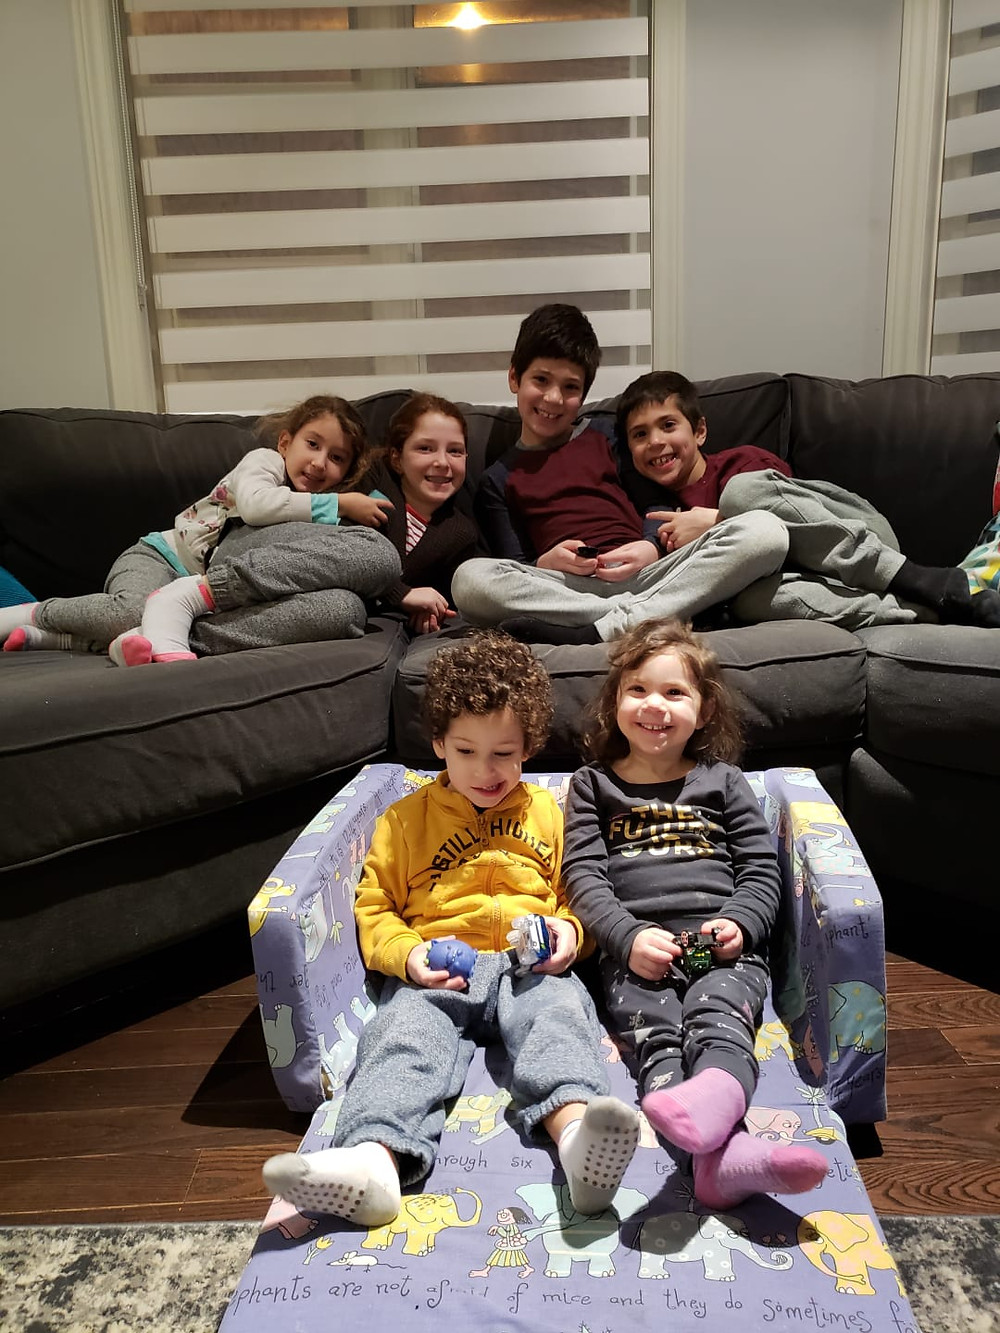 A snap of the kids before the movie!